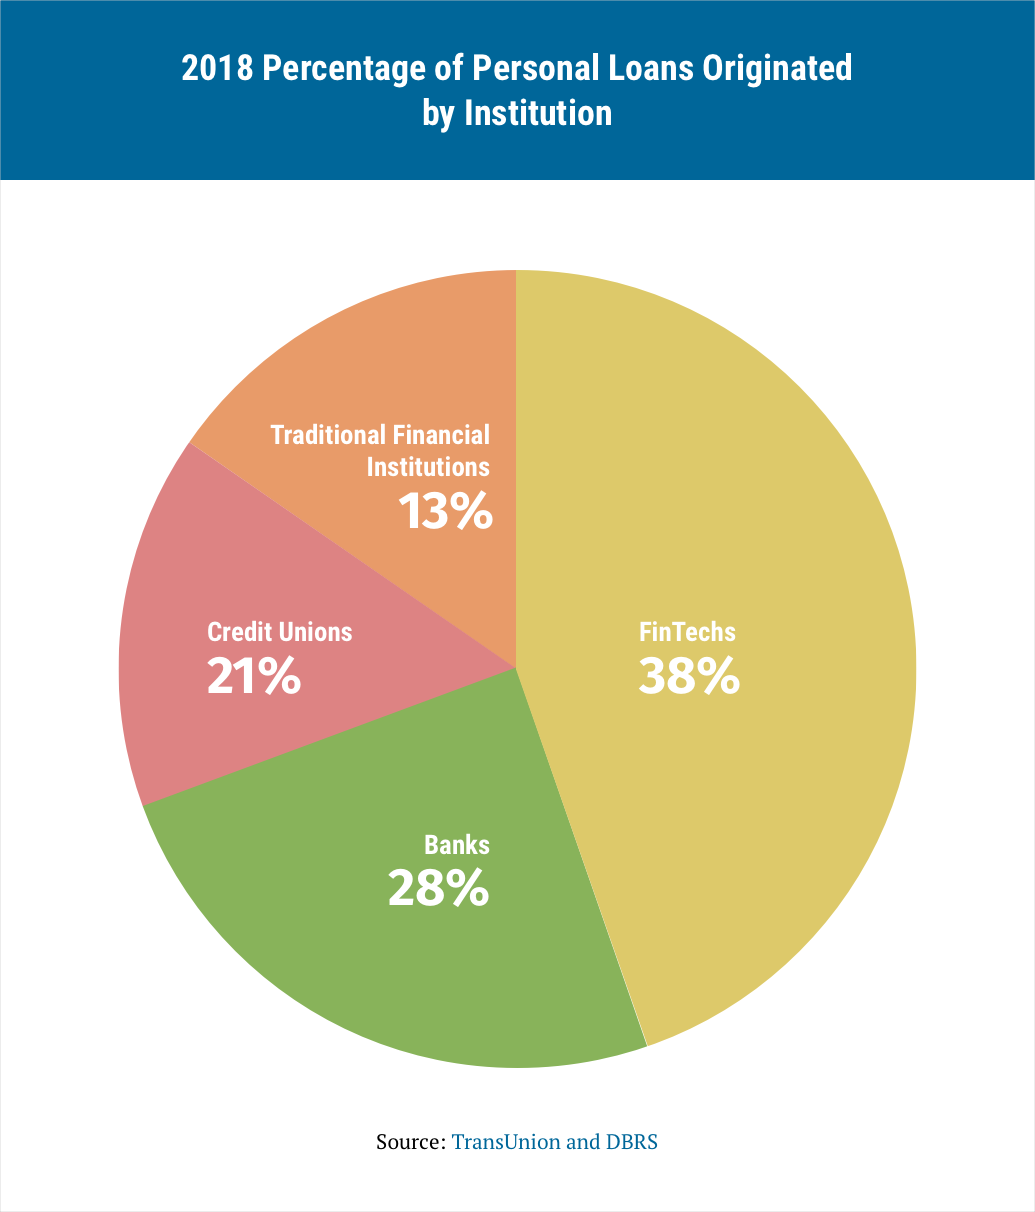 infographic on the percentage of personal loans originated by institution